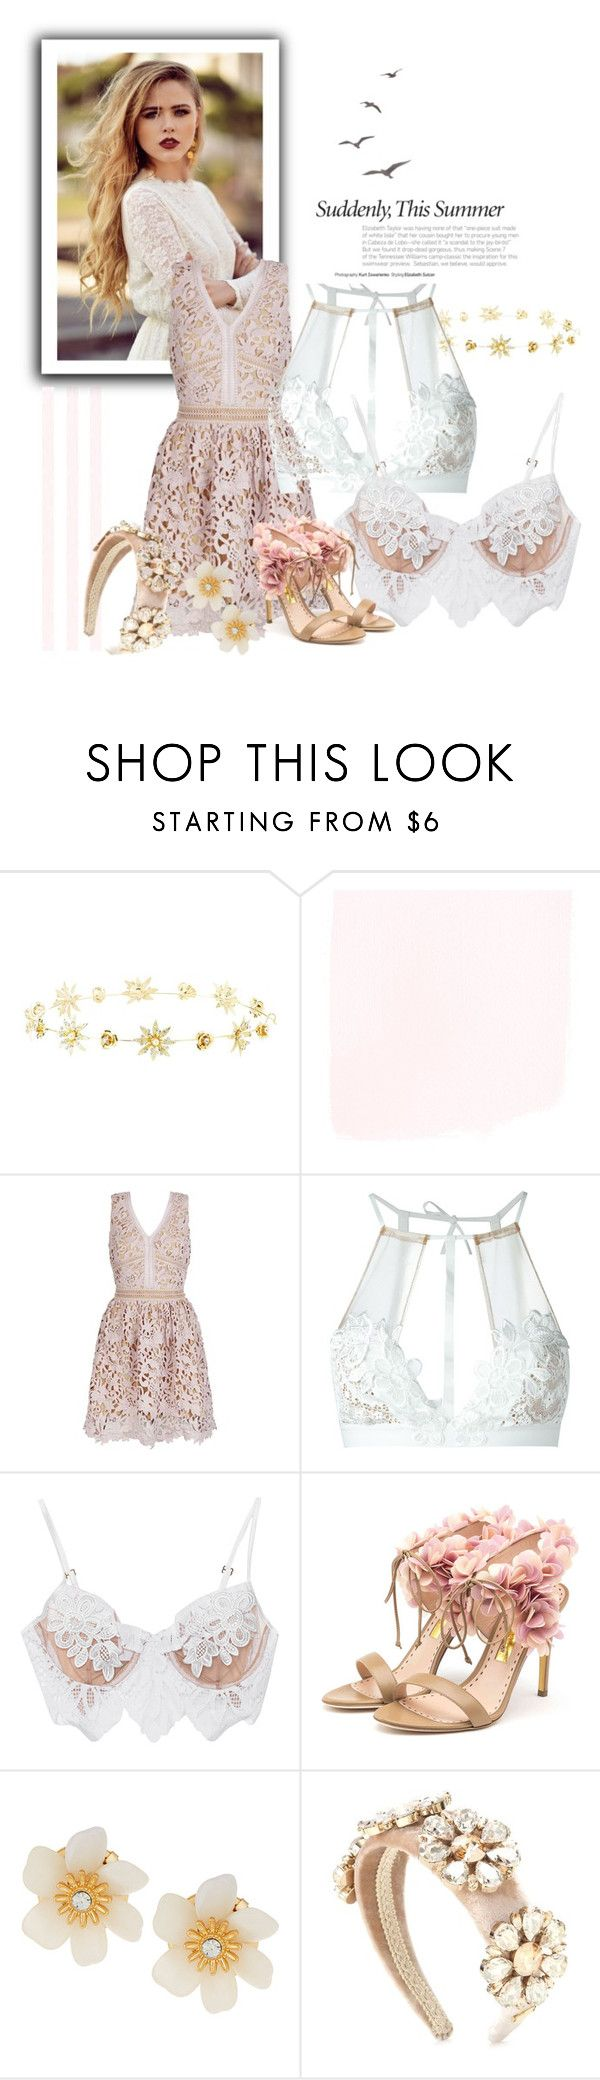 """""""rose lace chic"""" by anya2991 on Polyvore featuring moda, Charlotte Russe, For Love & Lemons, Rupert Sanderson, Lydell NYC e Dolce&Gabbana"""